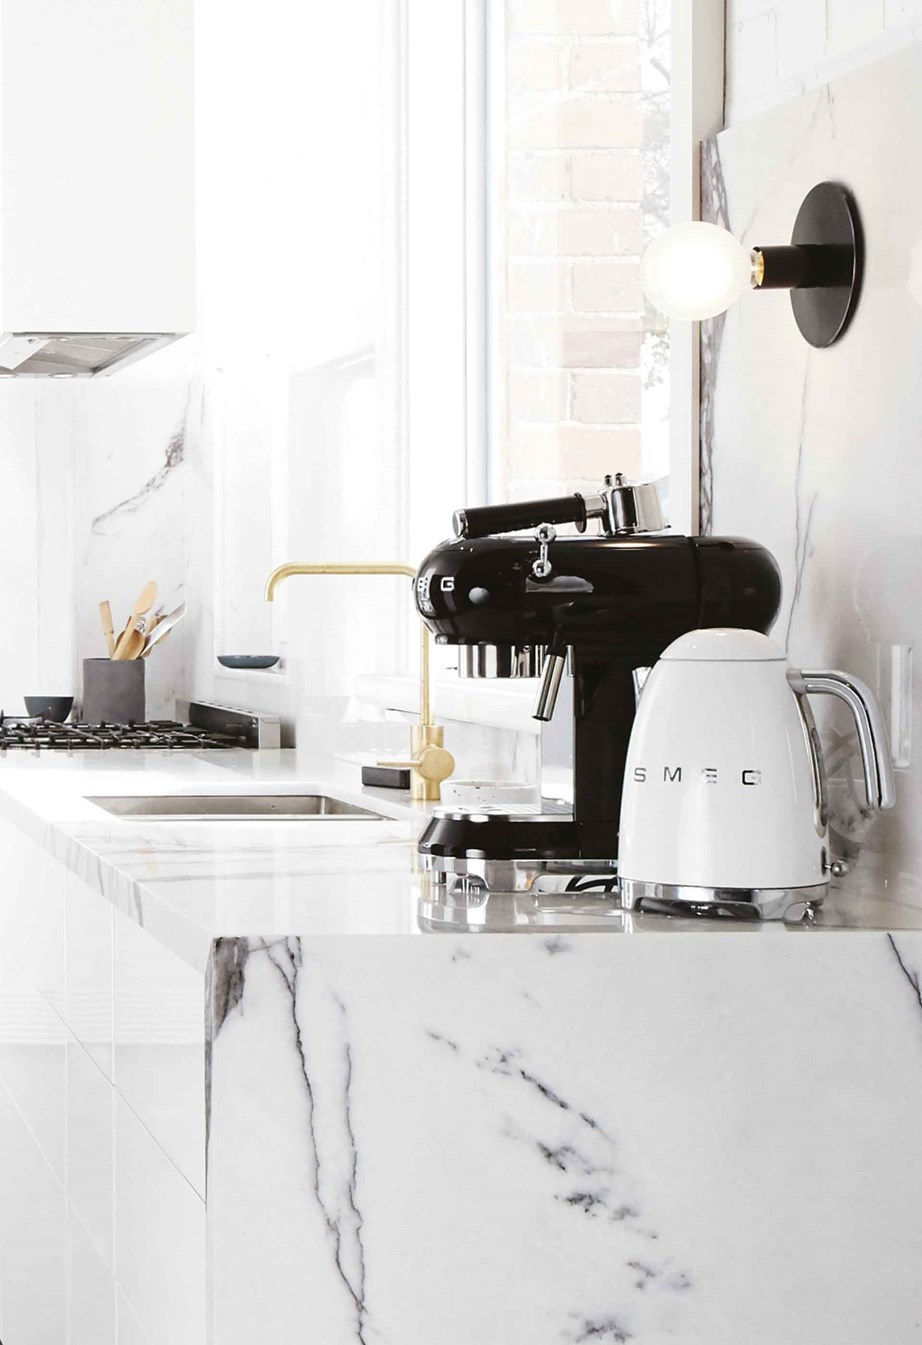 """[Smeg](https://www.thegoodguys.com.au/smeg/small-kitchen-appliances/coffee-machines-and-beverages/coffee-machines